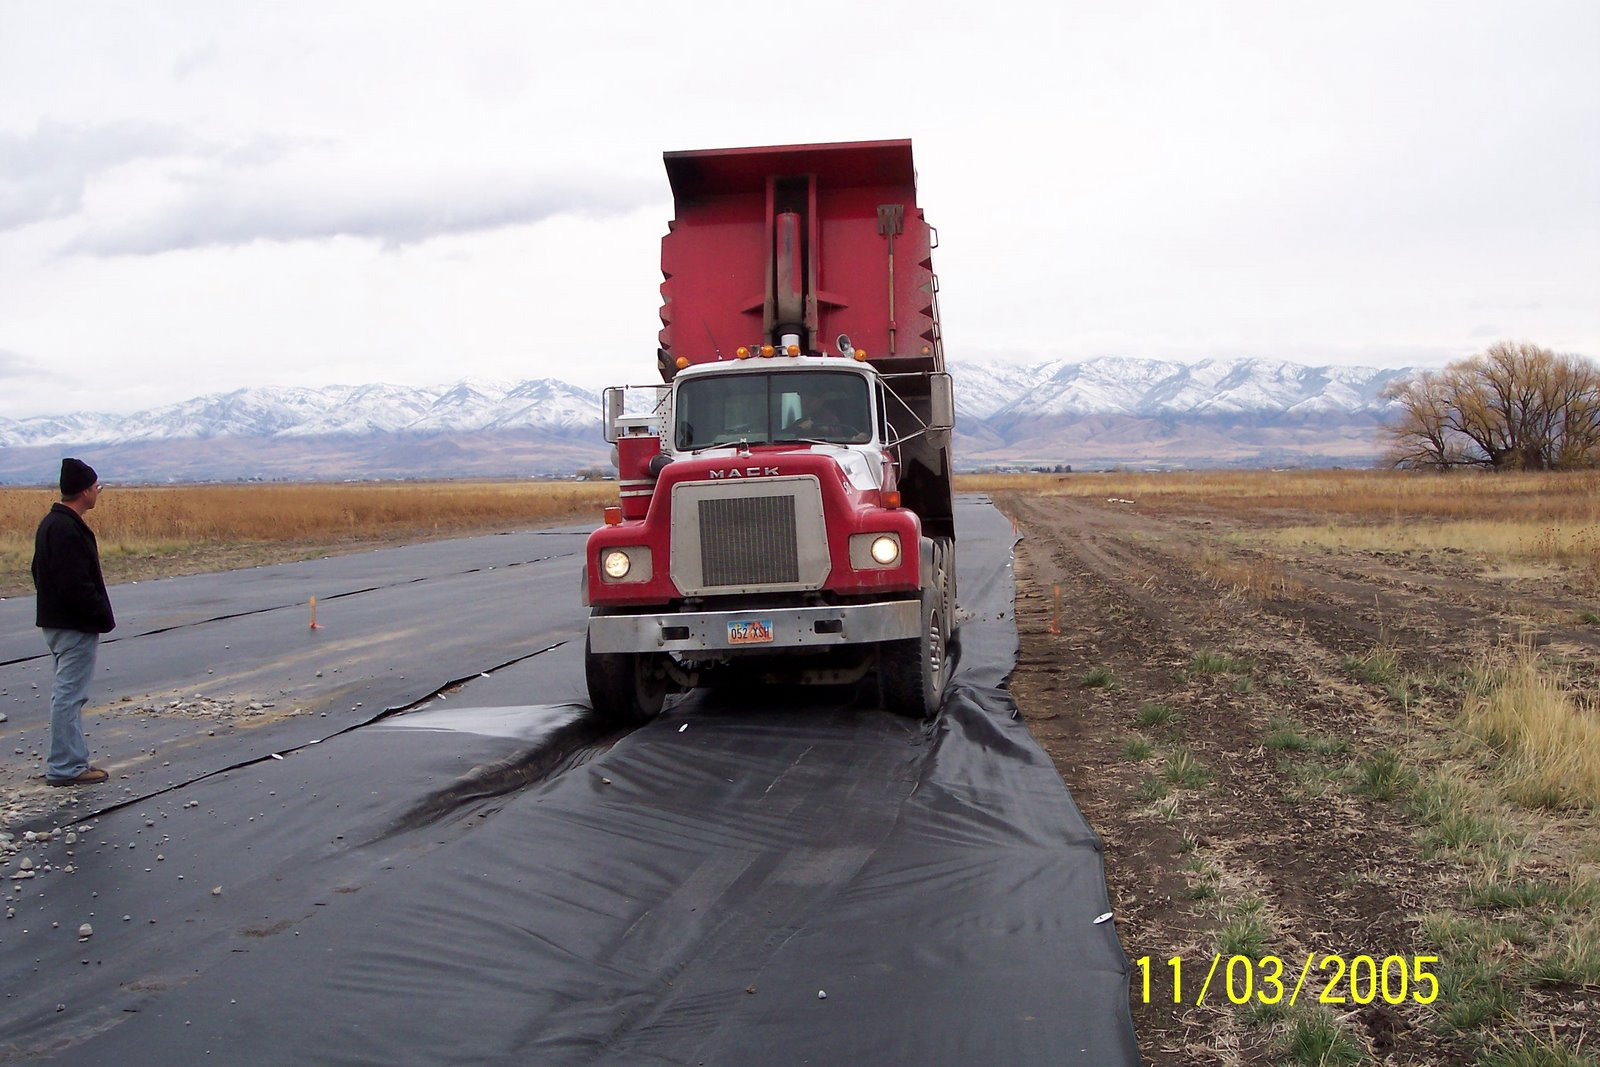 """HOOLEY PONDERS WHEN PLAN """"A"""" IS STALLED AS GRAVEL TRUCK SINKS INTO SOFT SOIL. BEST CREATE A PLAN """"B""""."""